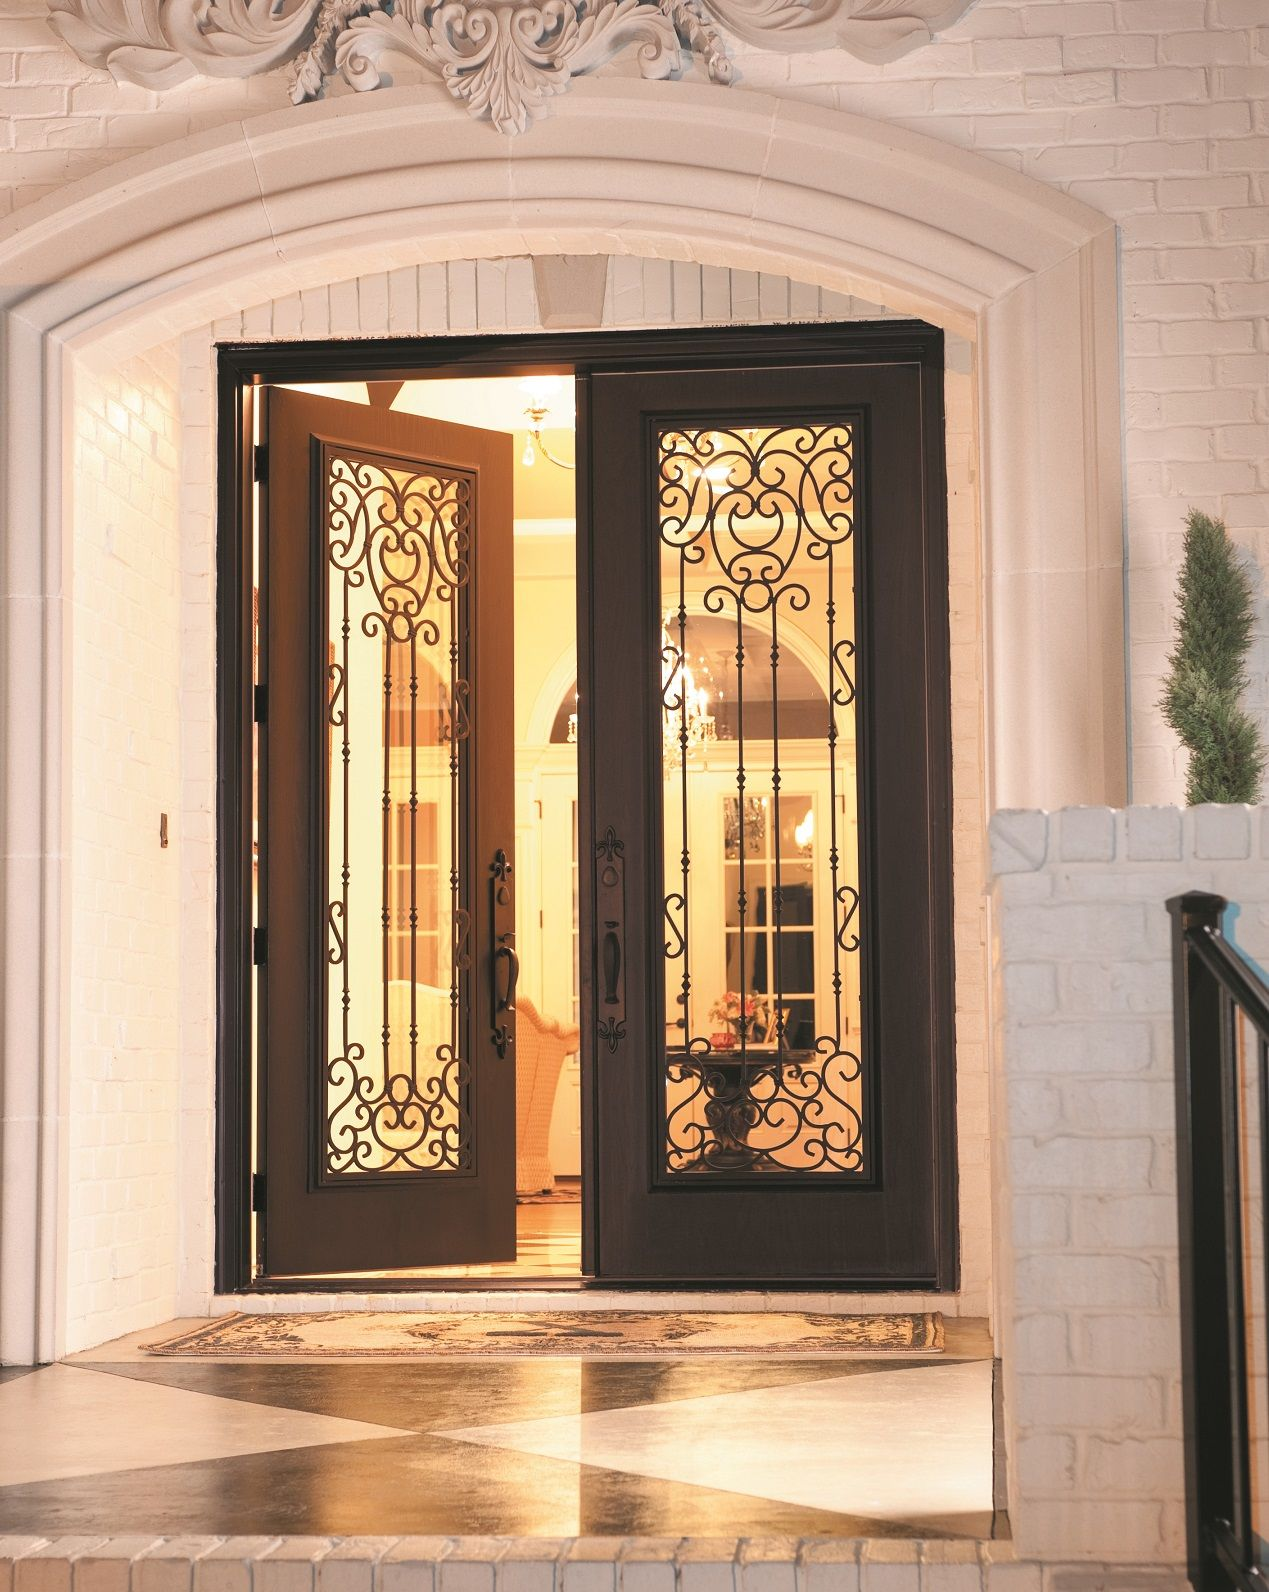 """Belle Meade"" #WroughtIron door glass. Swirls of wrought ..."